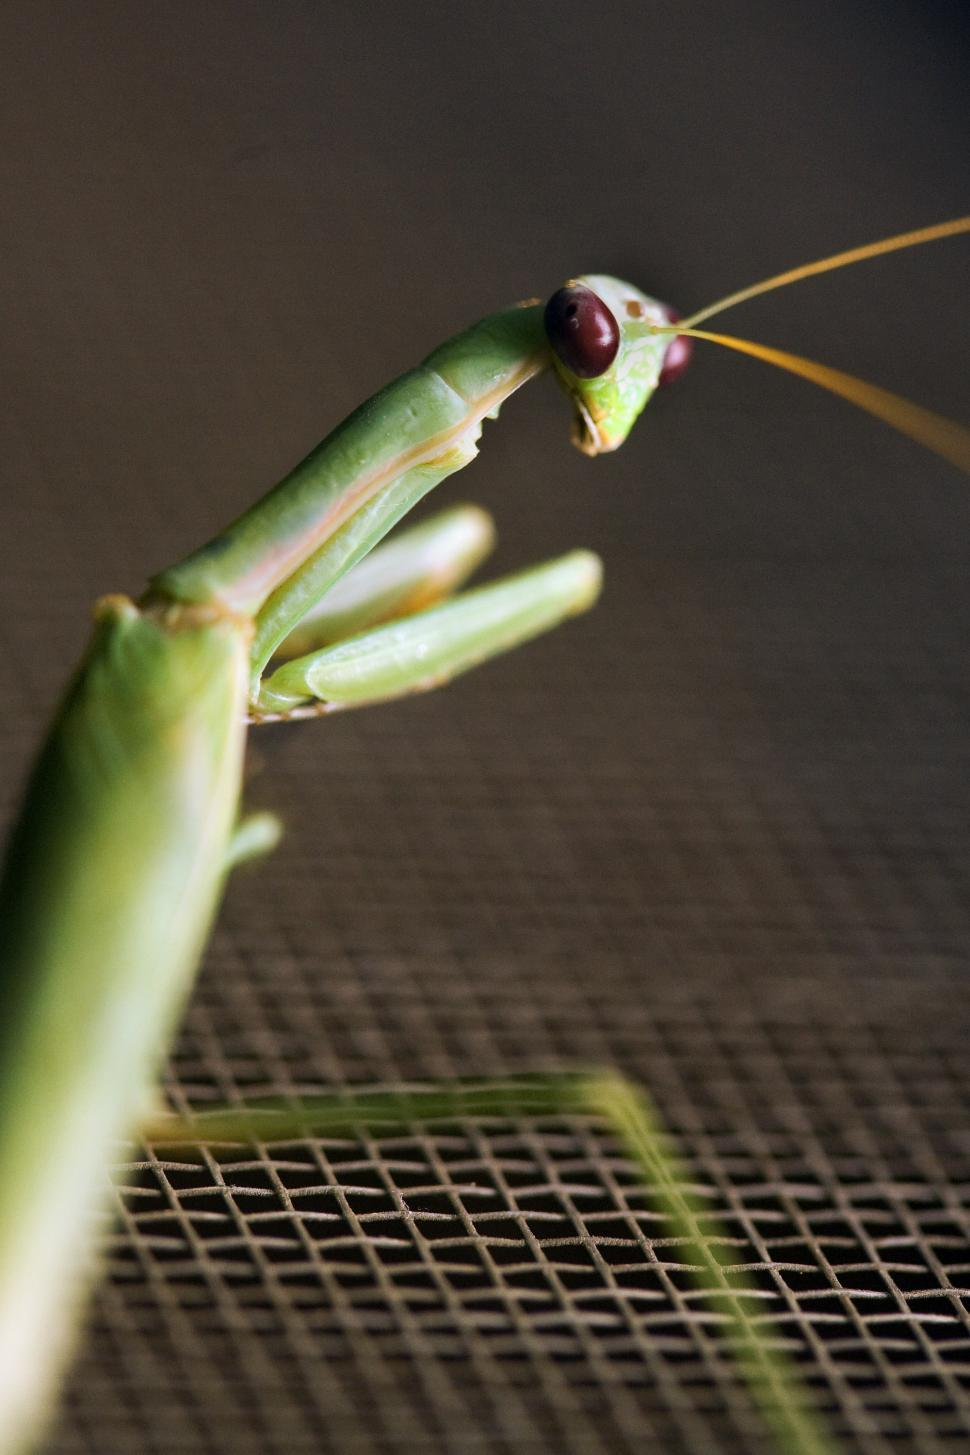 Download Free Stock HD Photo of mantis sits on window screen Online